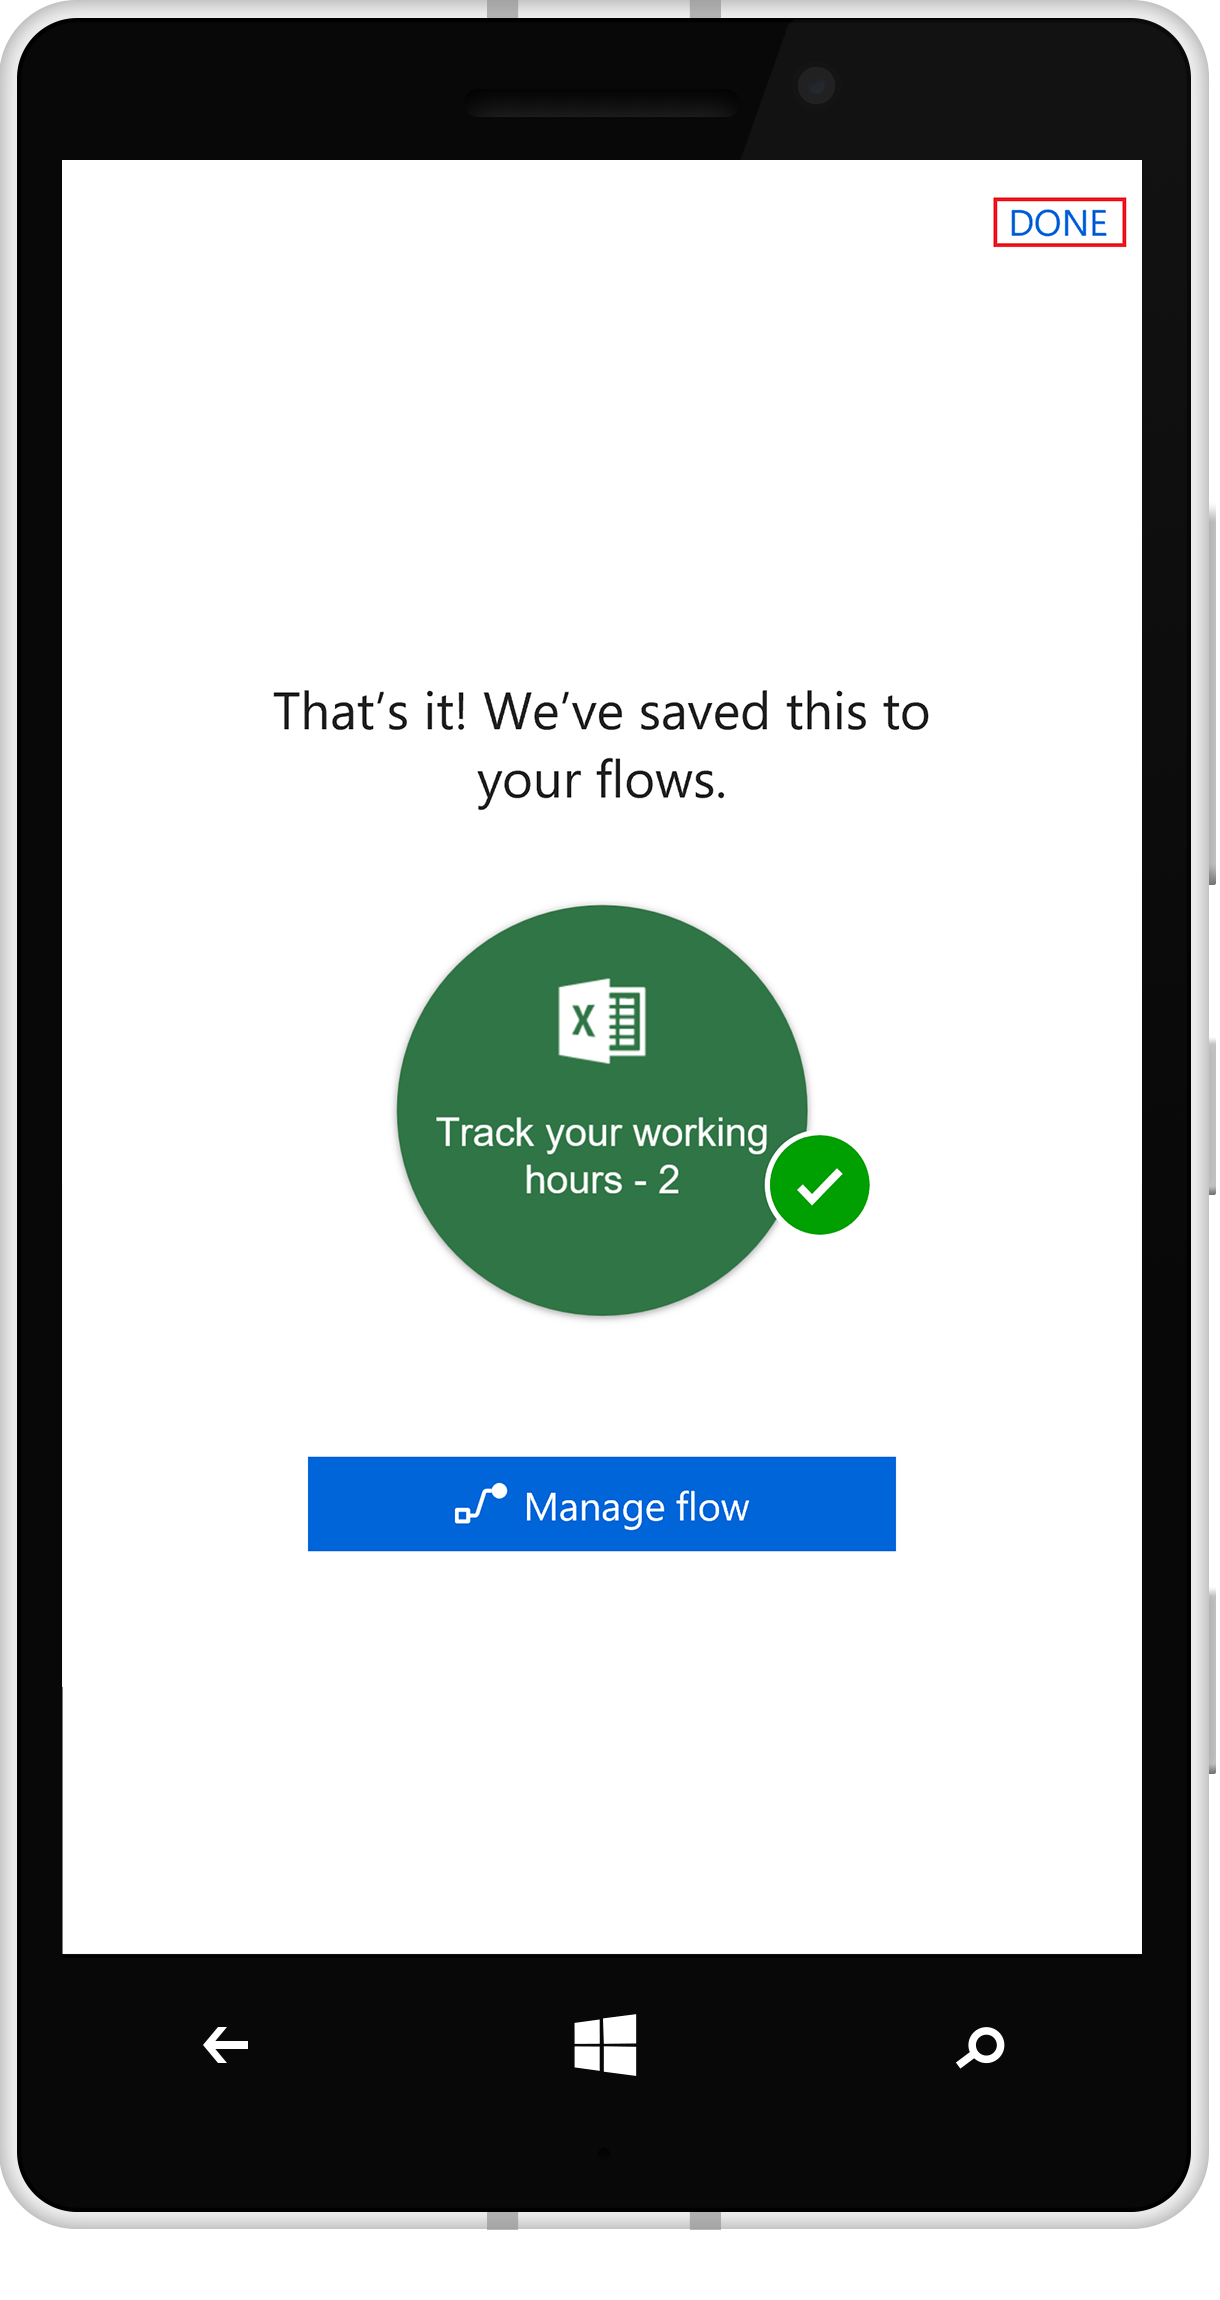 Flow creation success page